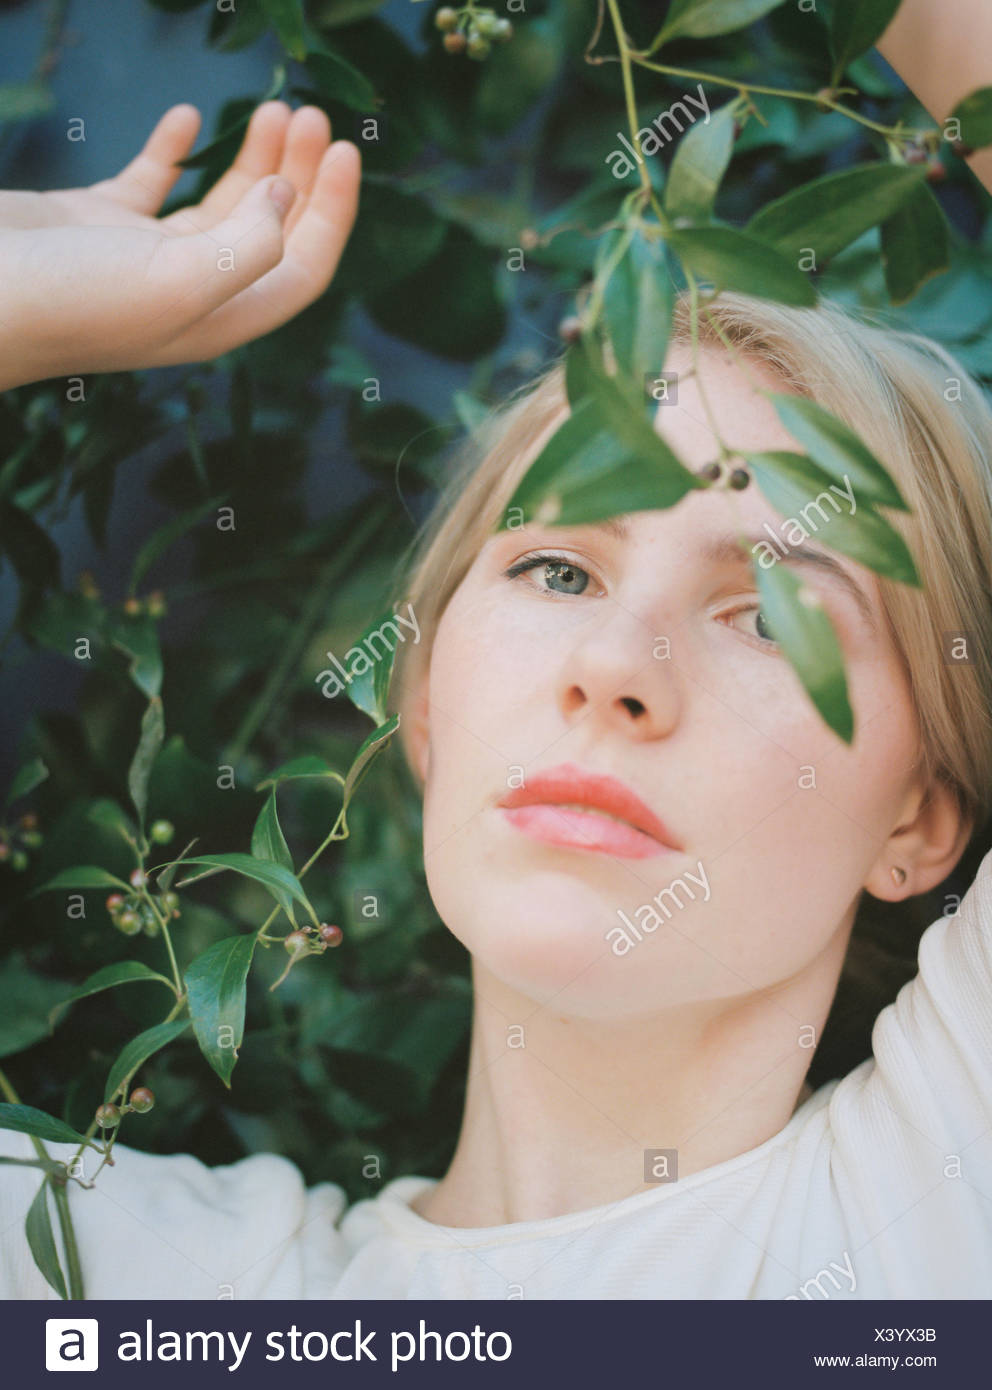 A blond haired woman looking wistfully through a vine with green leaves. - Stock Image